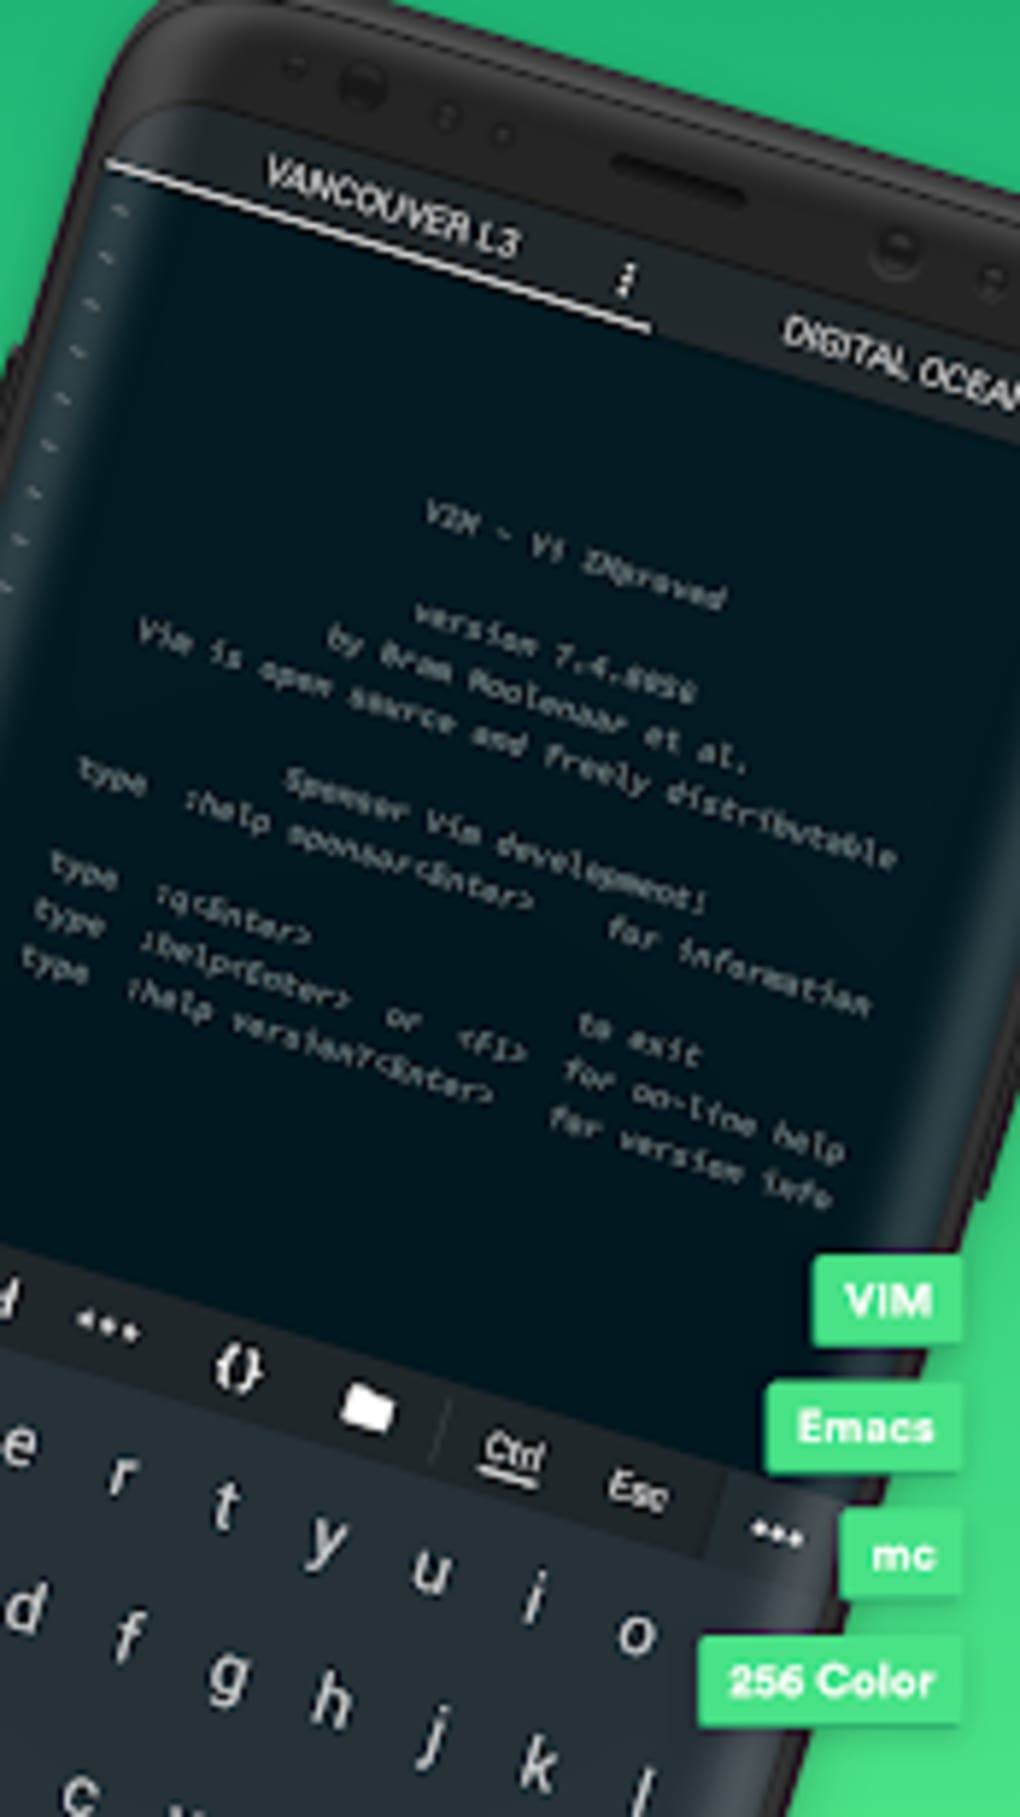 Termius SSH Mosh and Telnet client for Android - Download